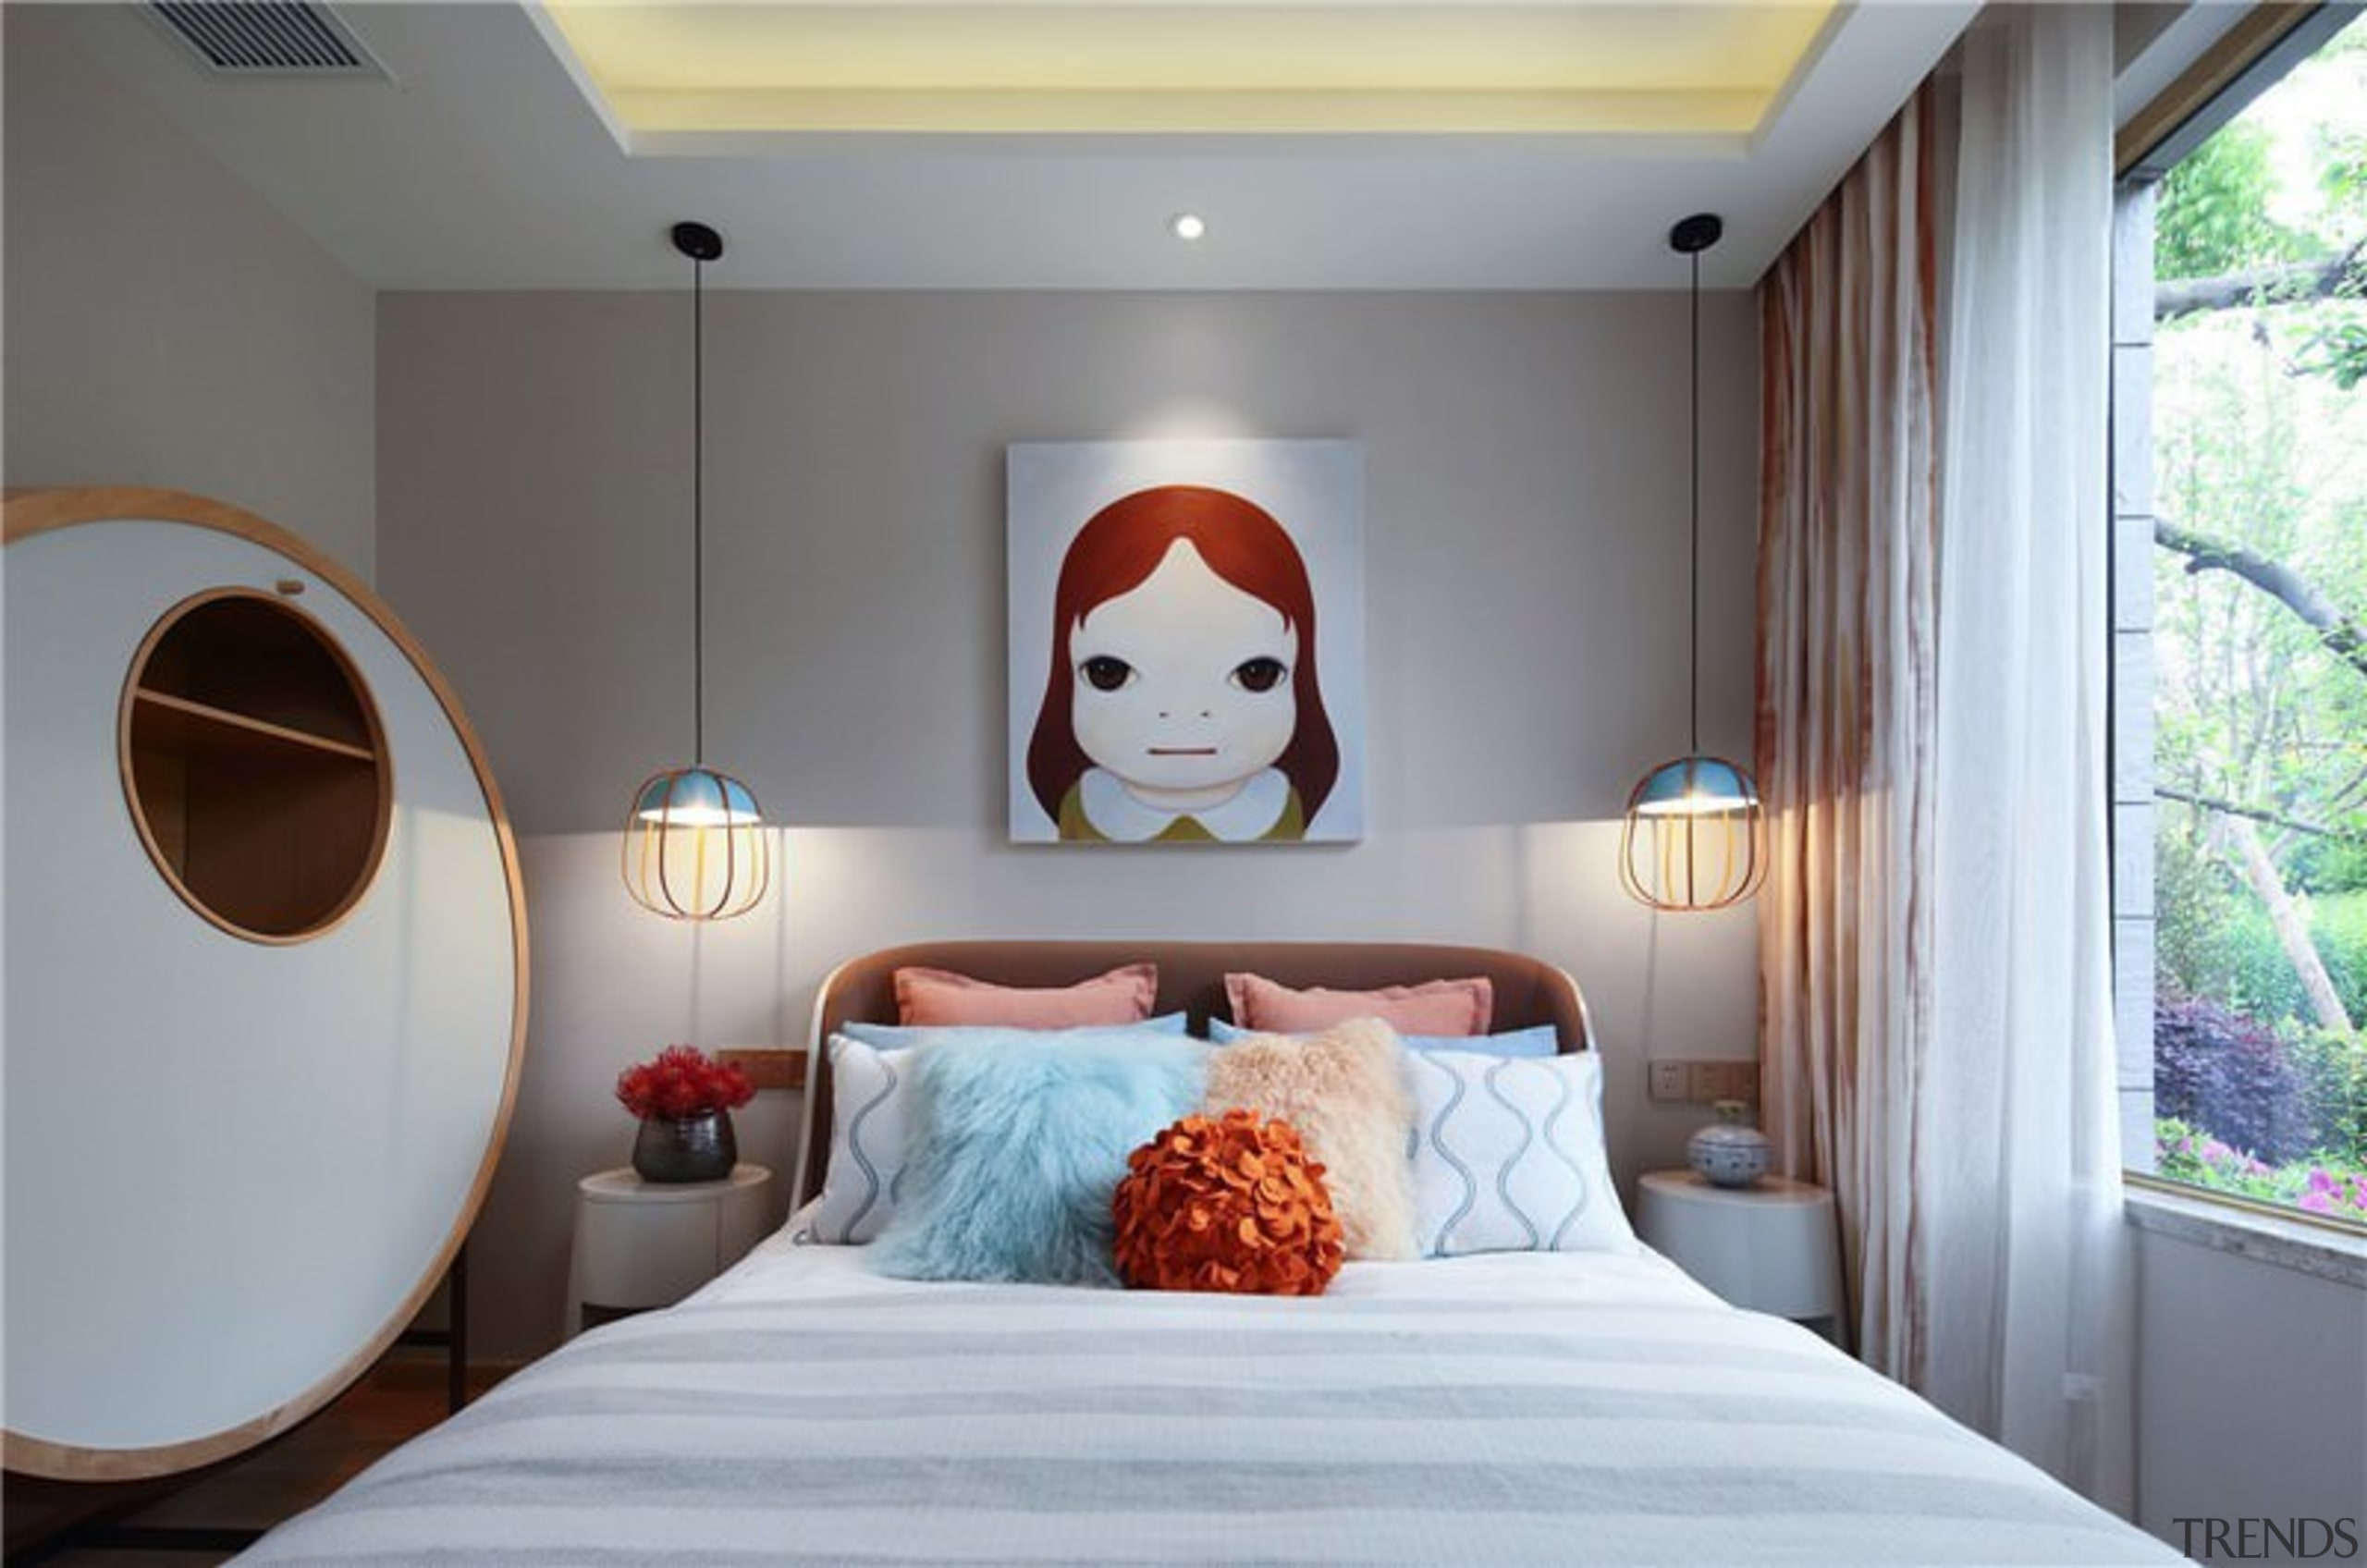 You can see the lush surroundings just outside bed, bedroom, ceiling, home, interior design, room, suite, gray